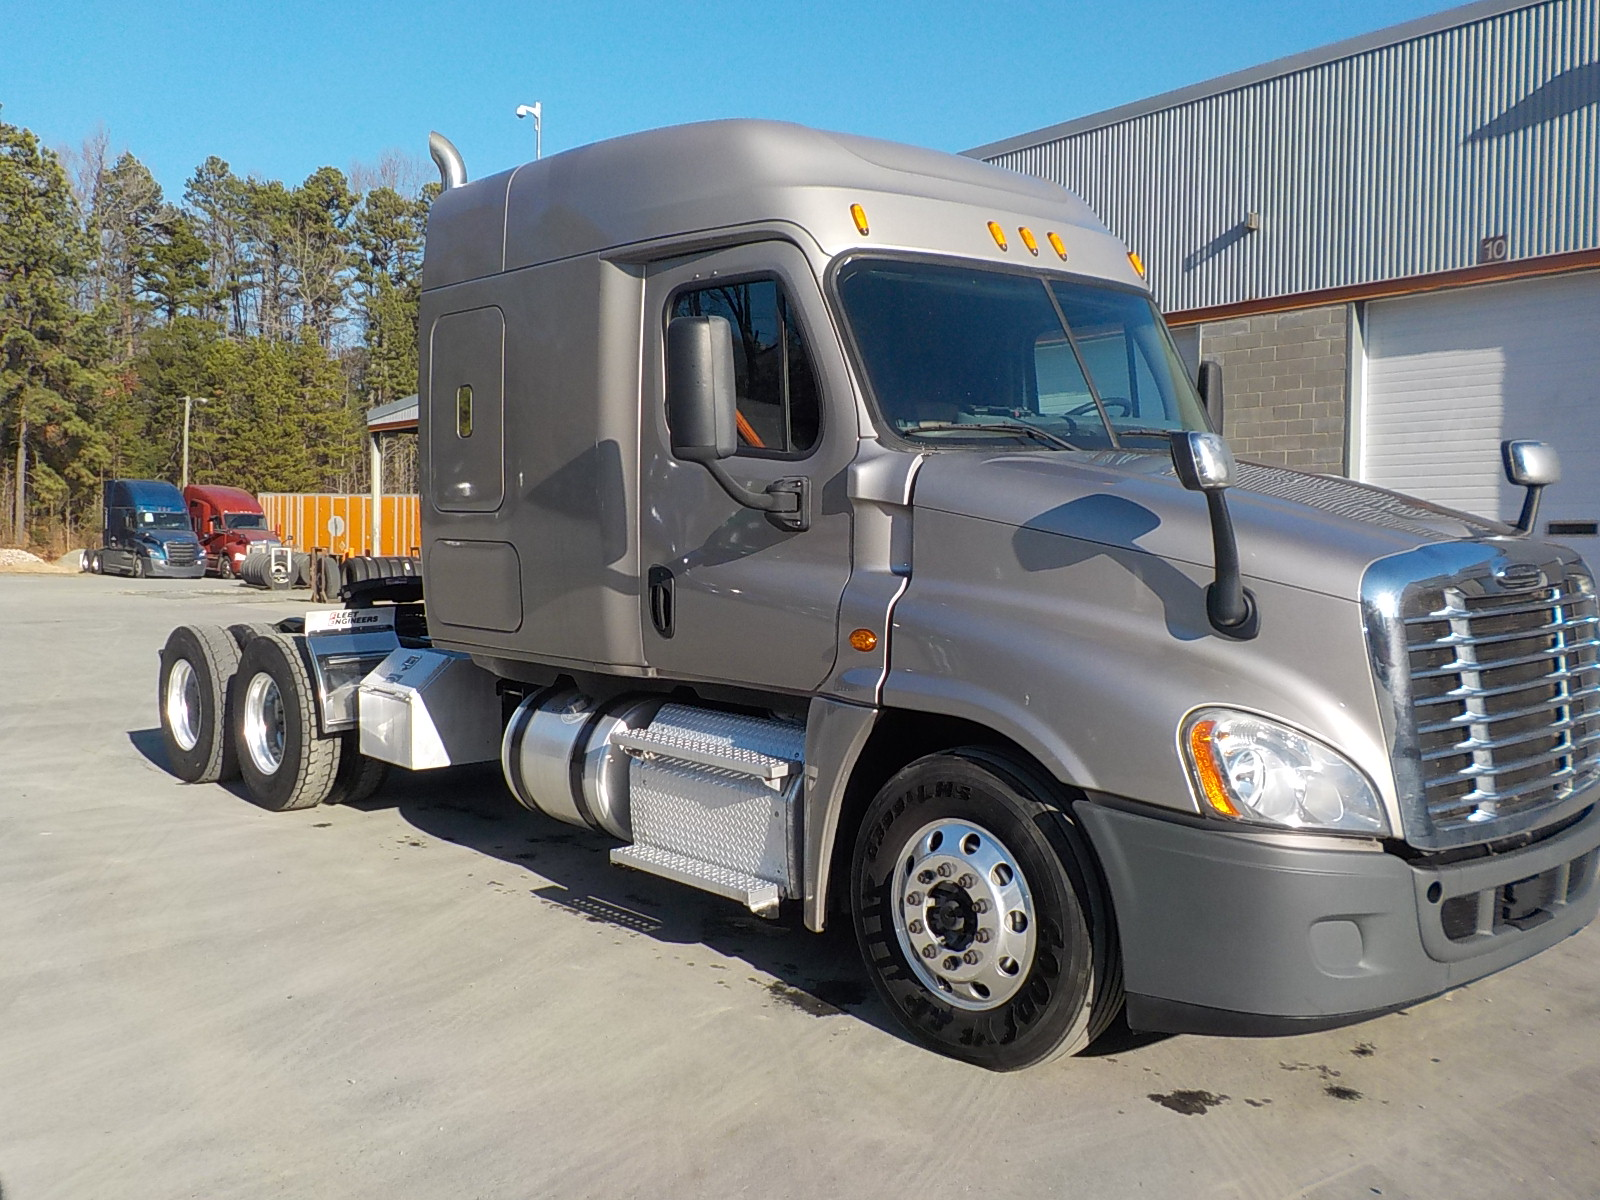 USED 2015 FREIGHTLINER CASCADIA DAYCAB TRUCK #138582